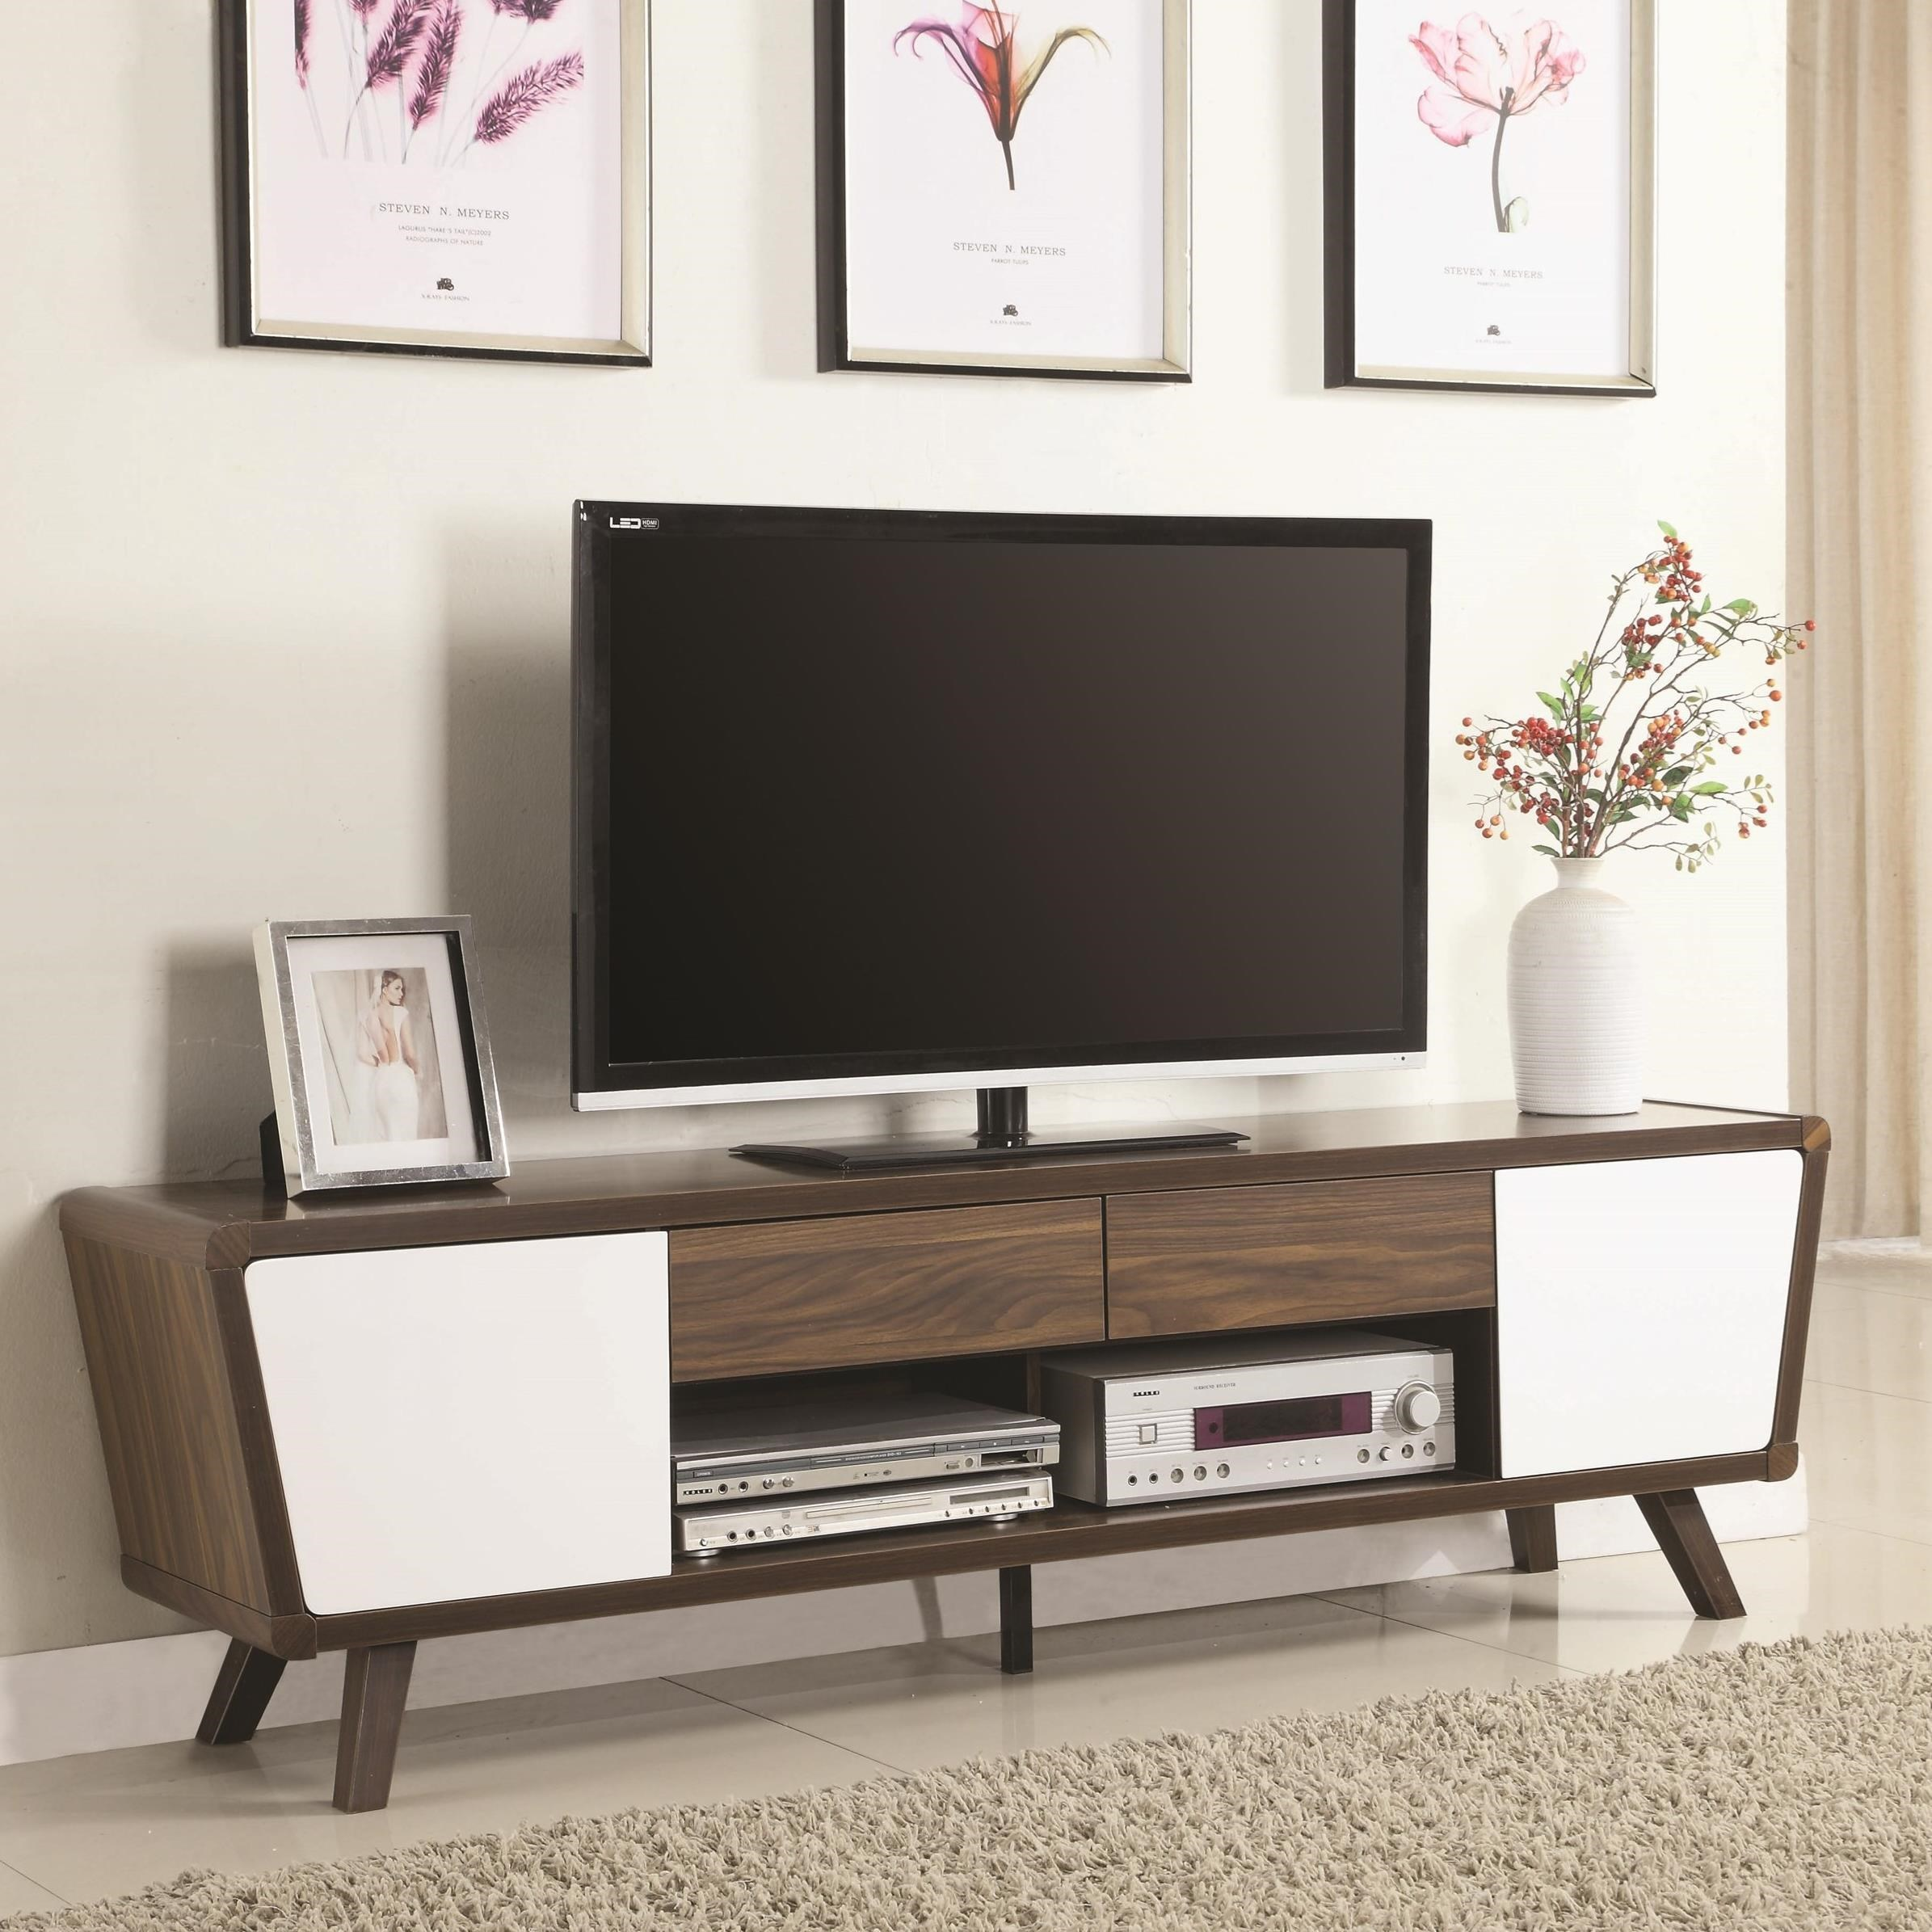 Modern Tv Entertainment Units Two Tone Mid Century Modern Tv Console By Coaster At Dunk Bright Furniture